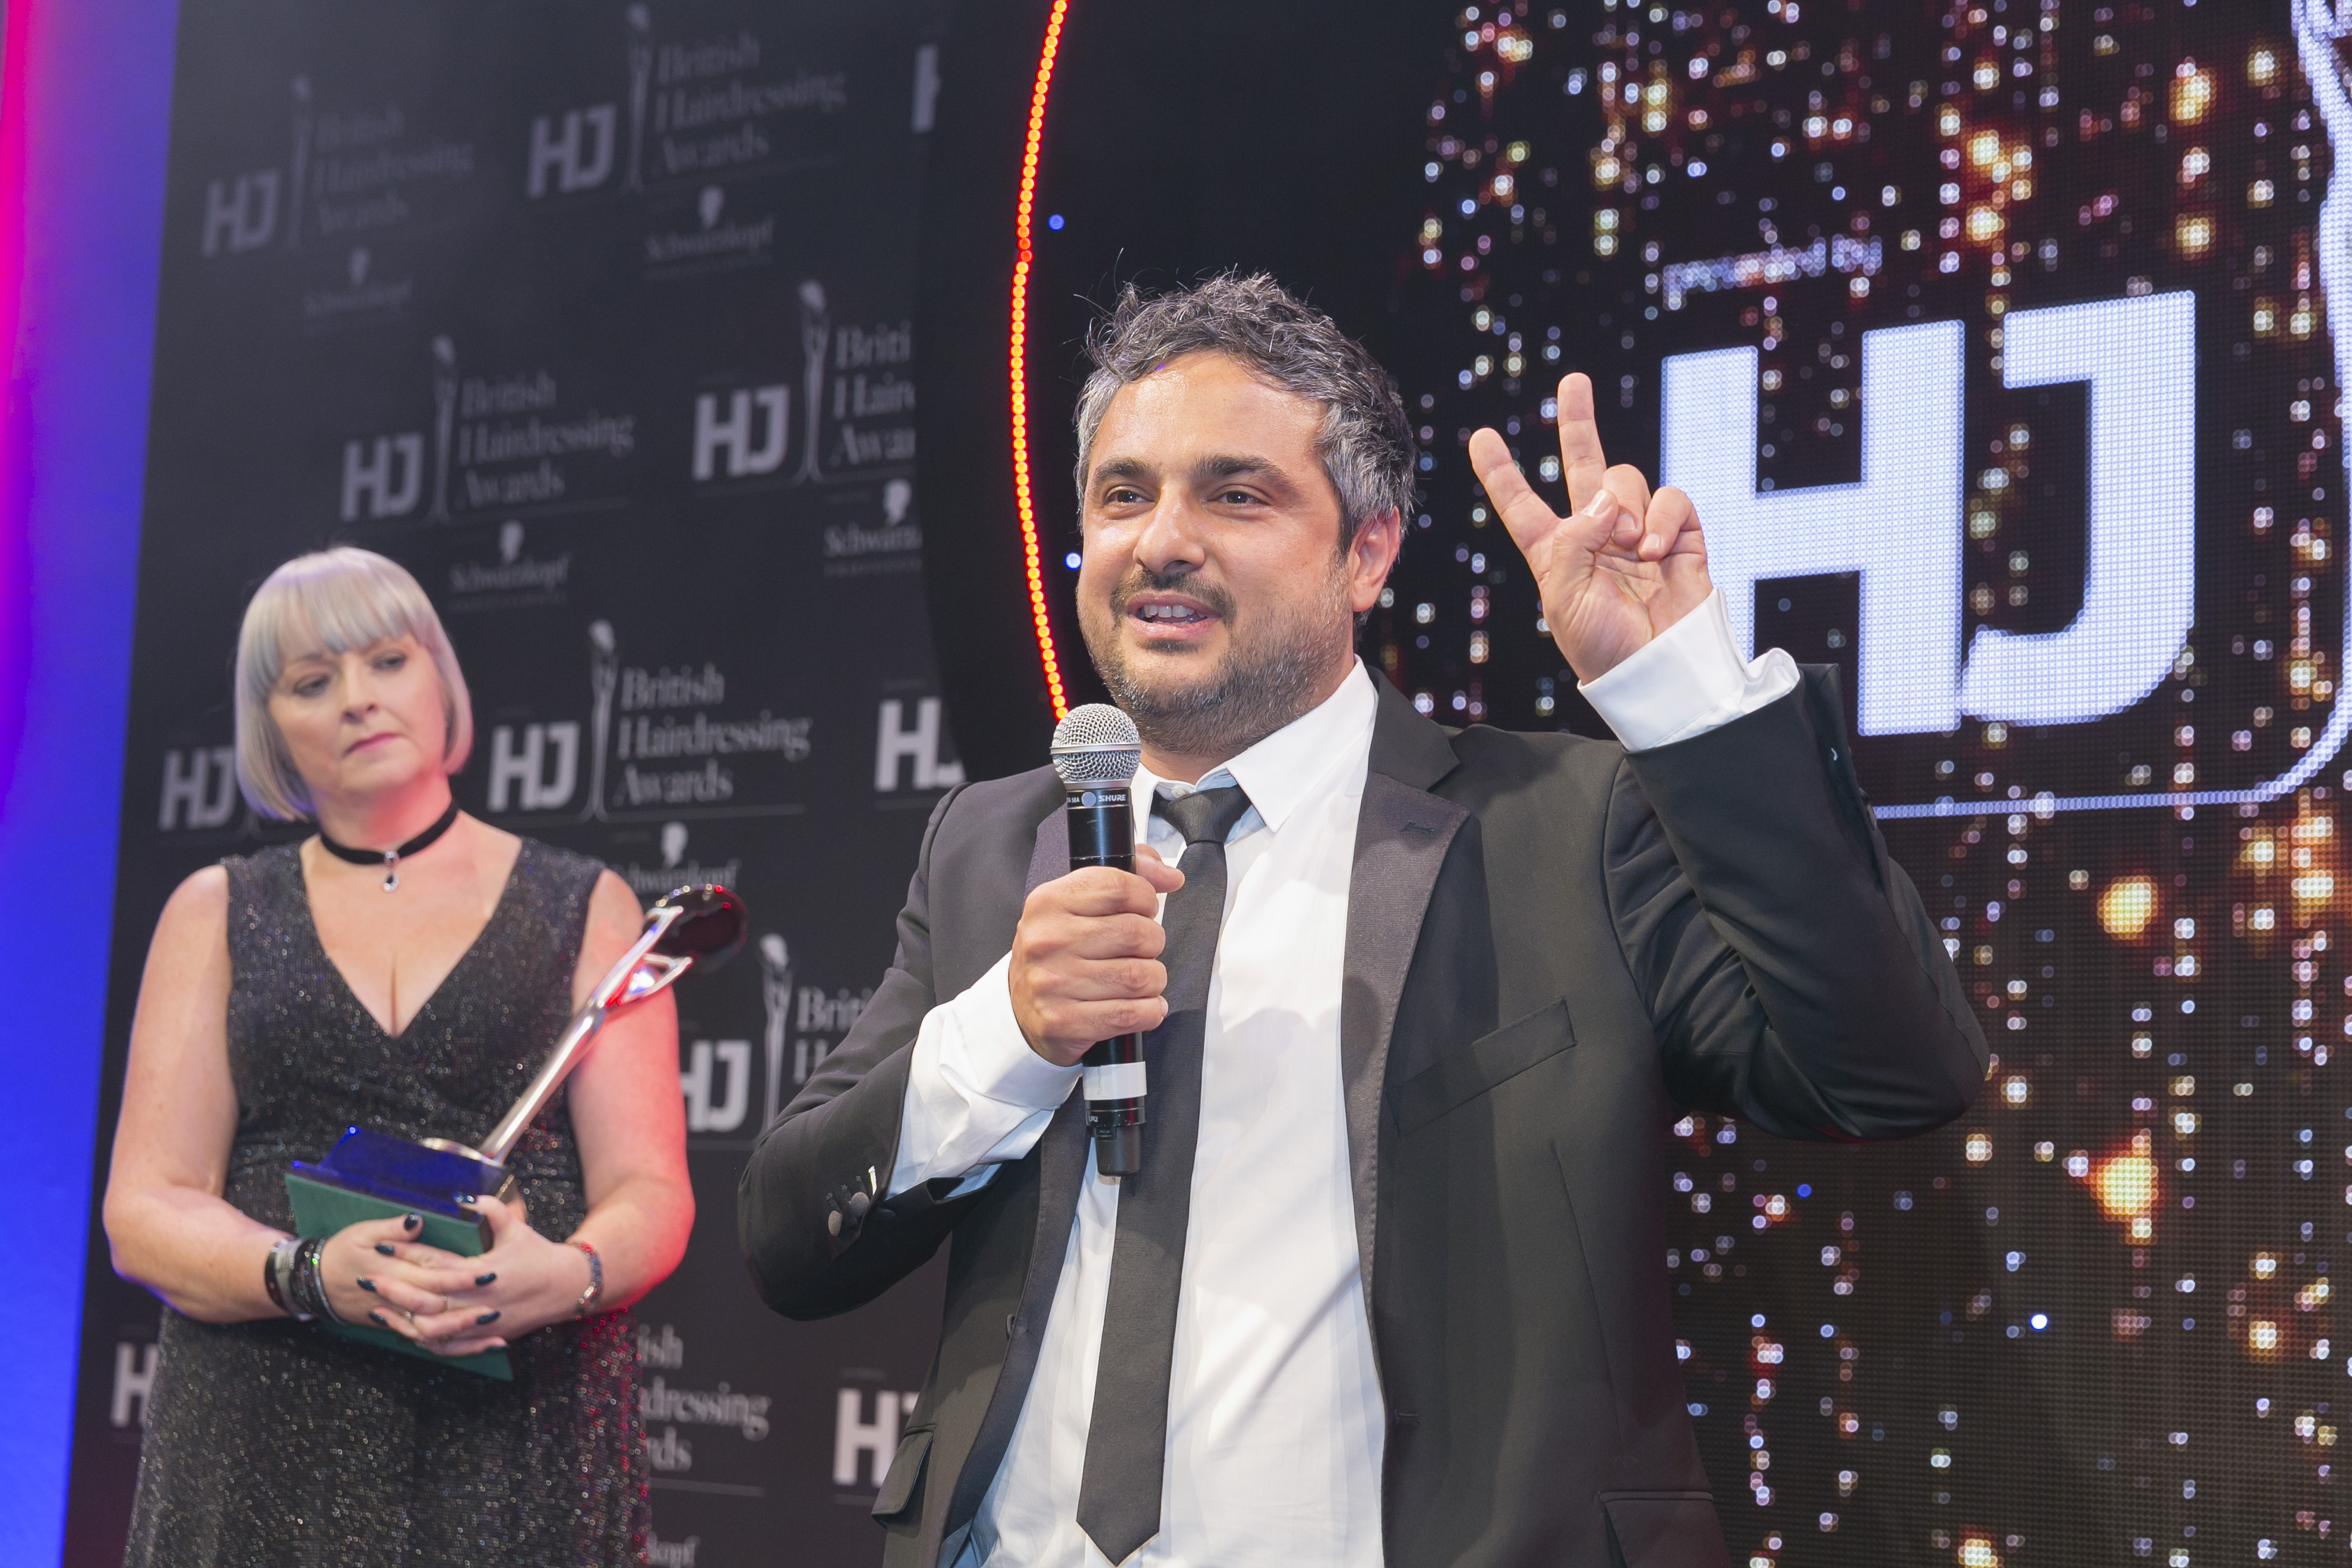 Announcing the 2016 British Hairdressing Award Winners